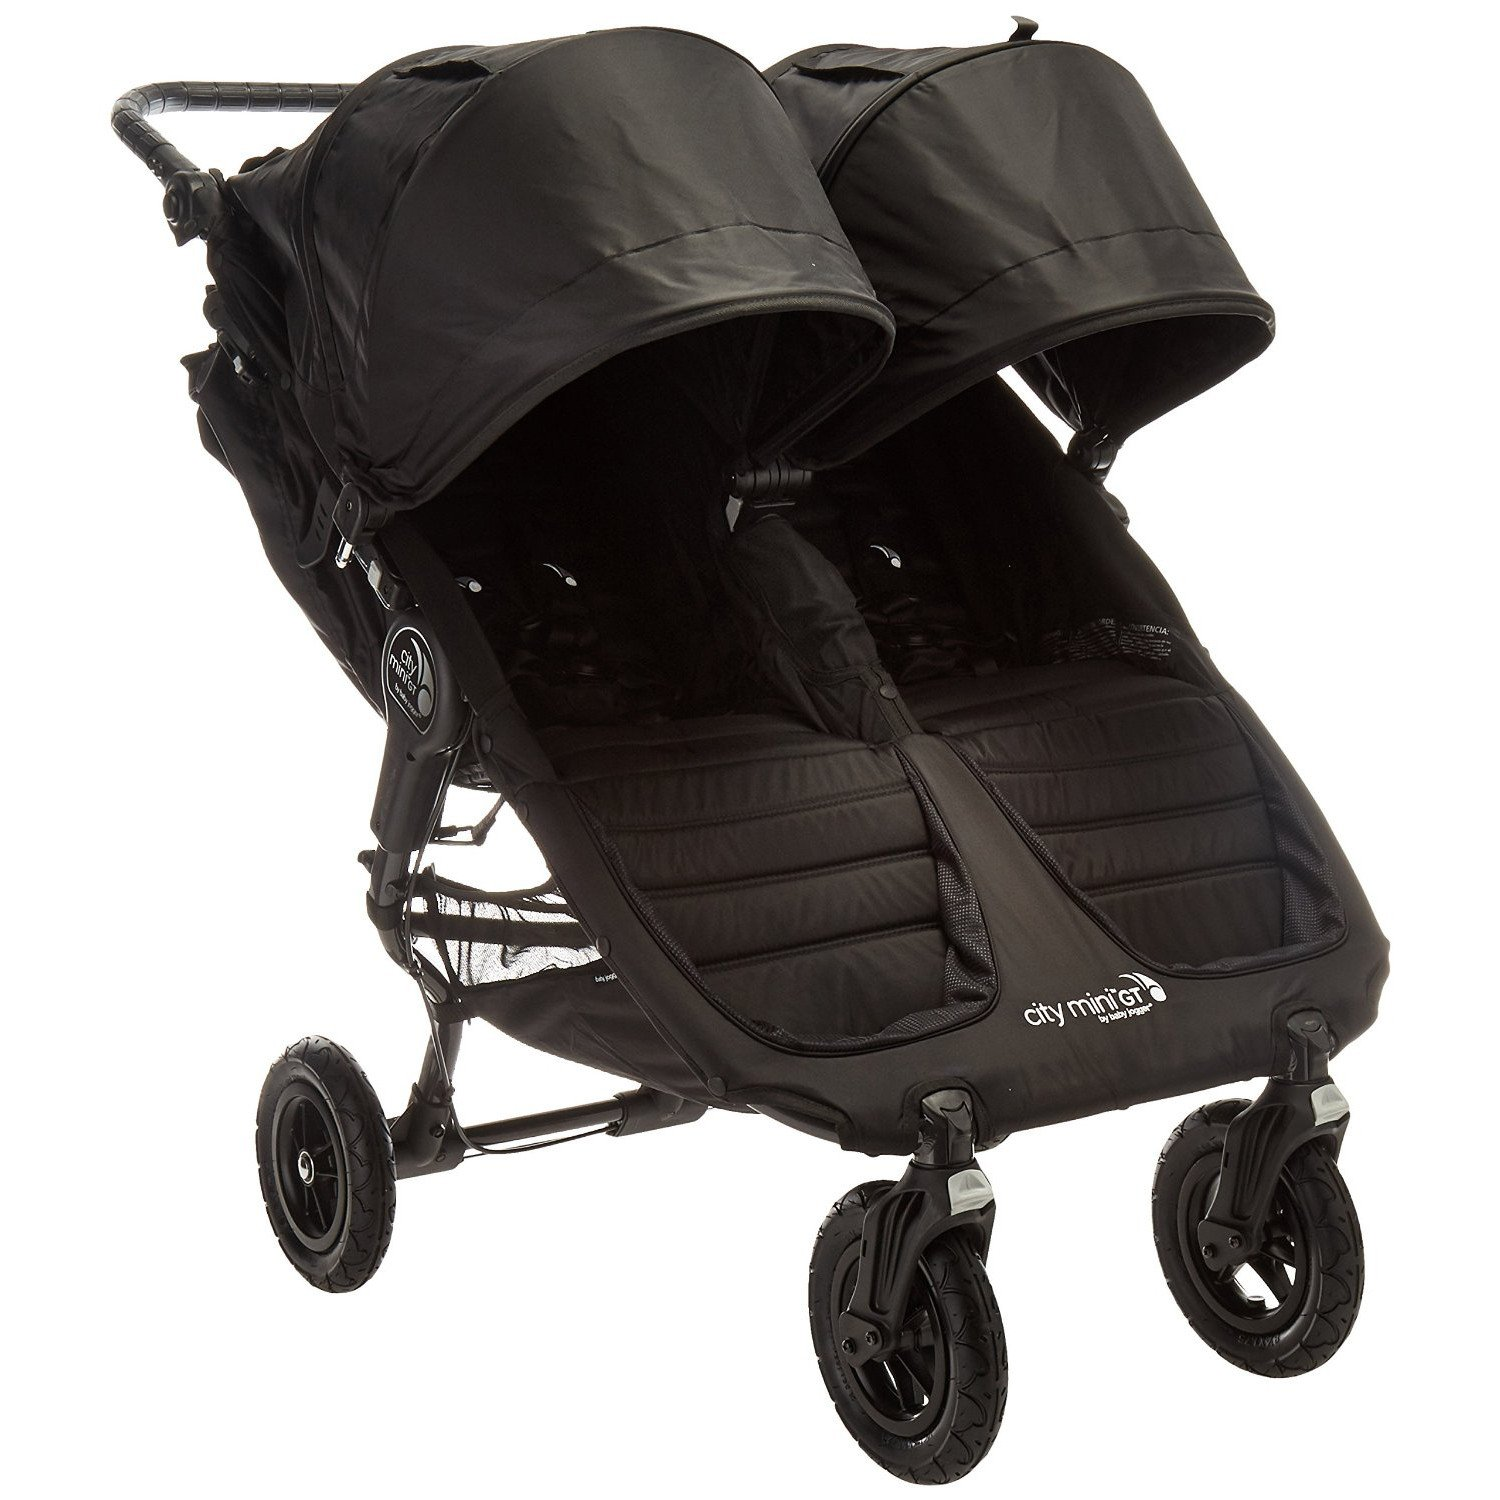 6 Best Strollers For Tall Parents Nov 2019 Reviews